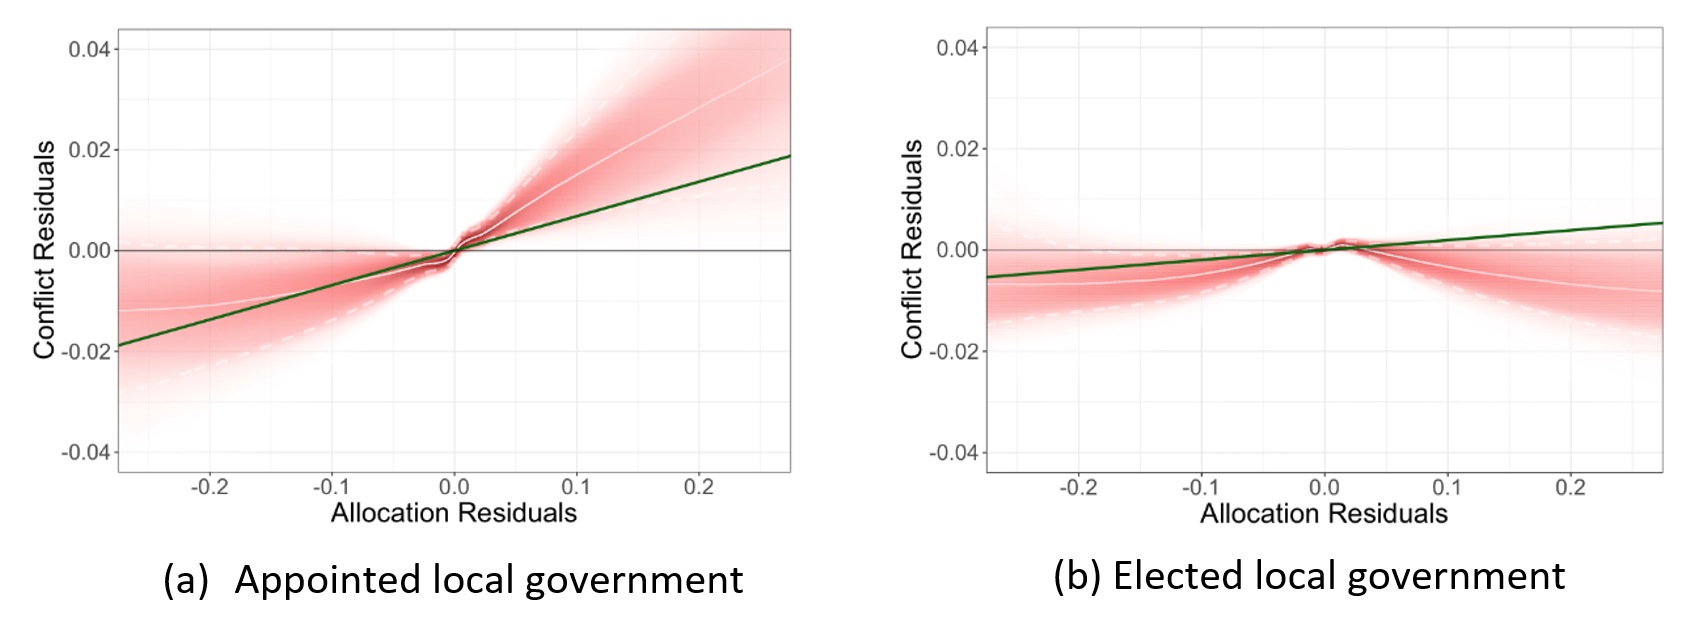 Positive and negative resource allocation shocks under elected and appointed regimes